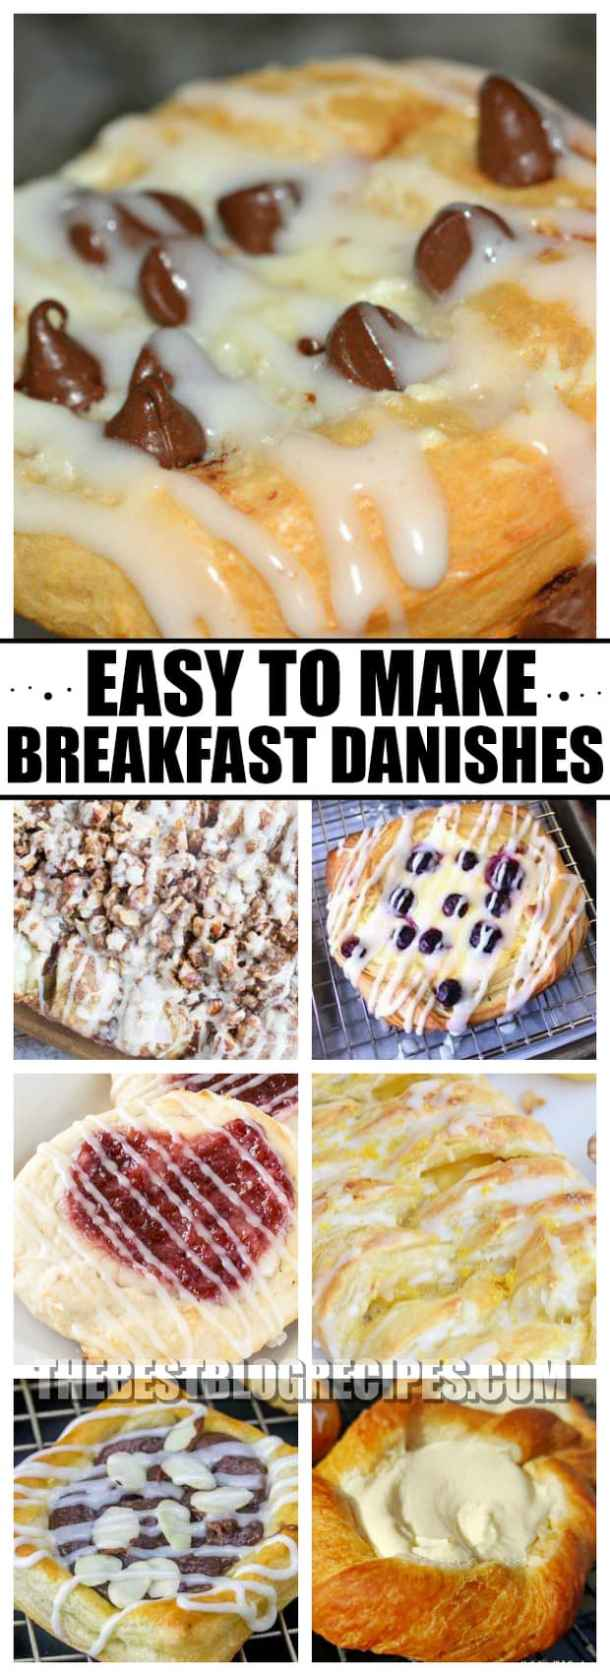 We all need Easy to Make Breakfast Danishes to Start Mornings off Right. Seriously, everyone needs a morning boost, and these delectable danishes are the way to kick off your day in the best possible way!